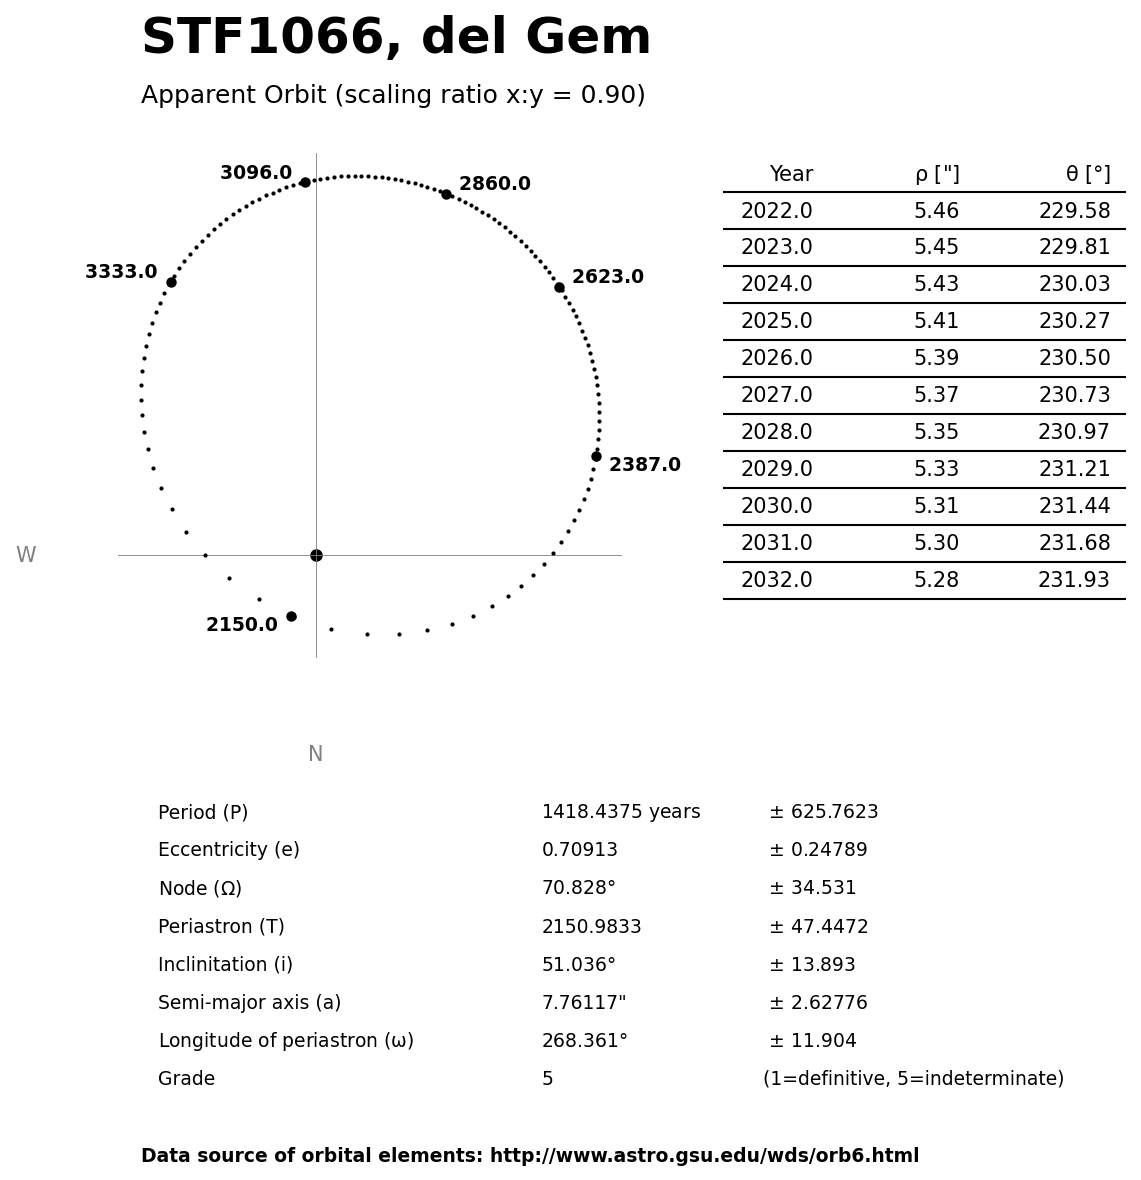 ../images/binary-star-orbits/STF1066-orbit.jpg